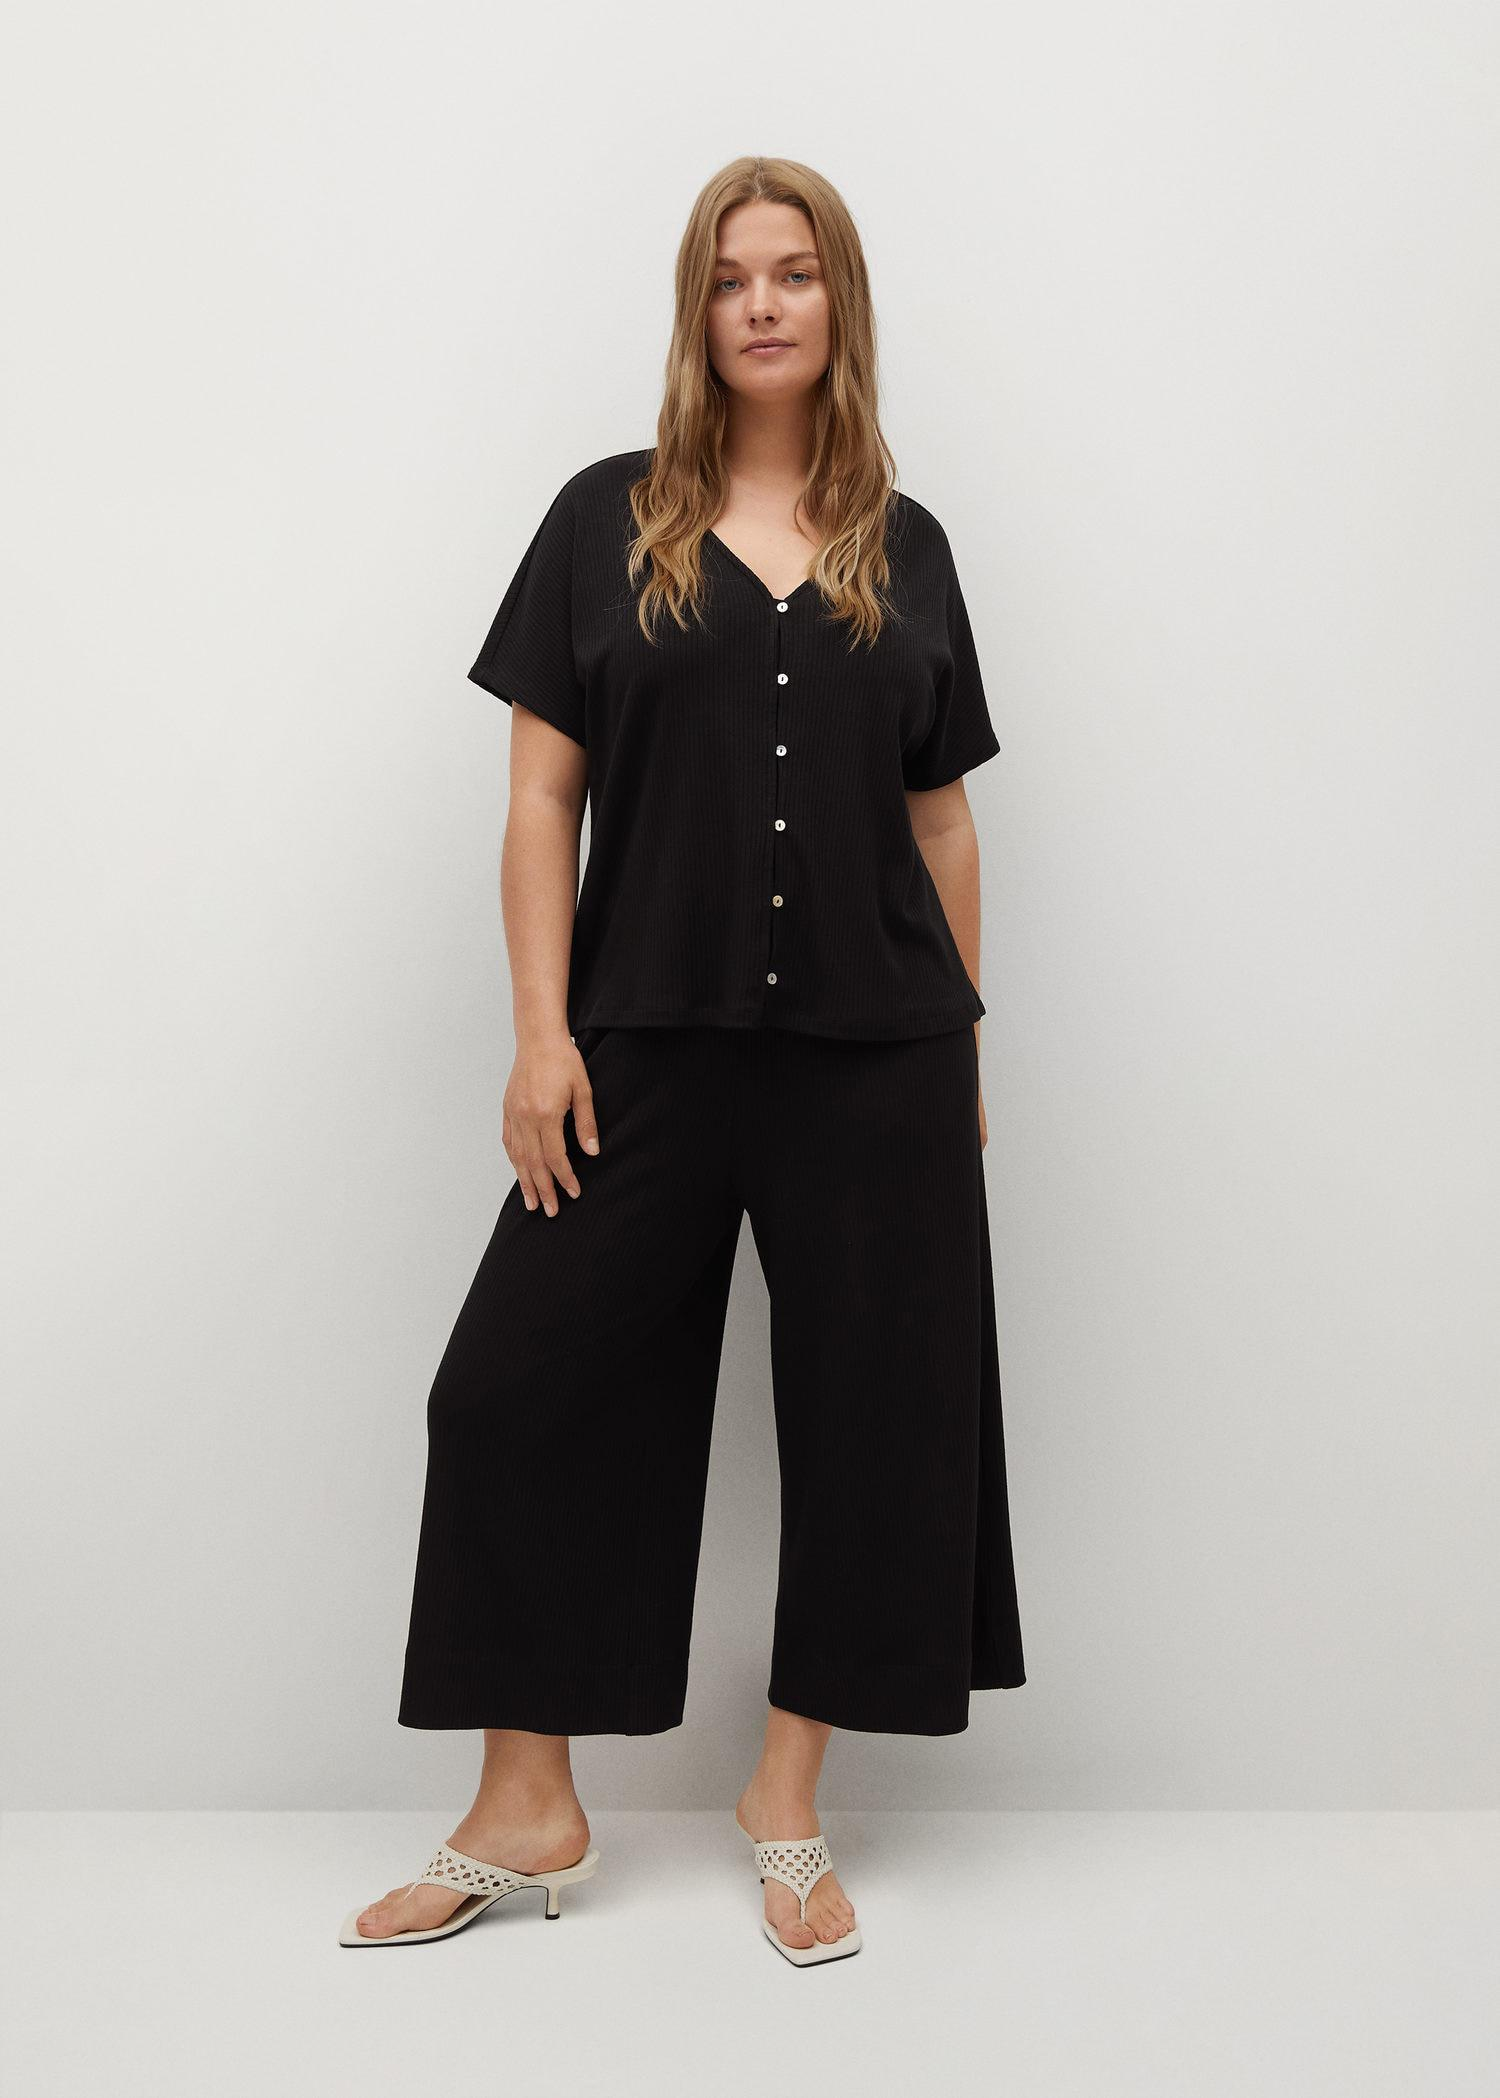 Ribbed culottes trousers